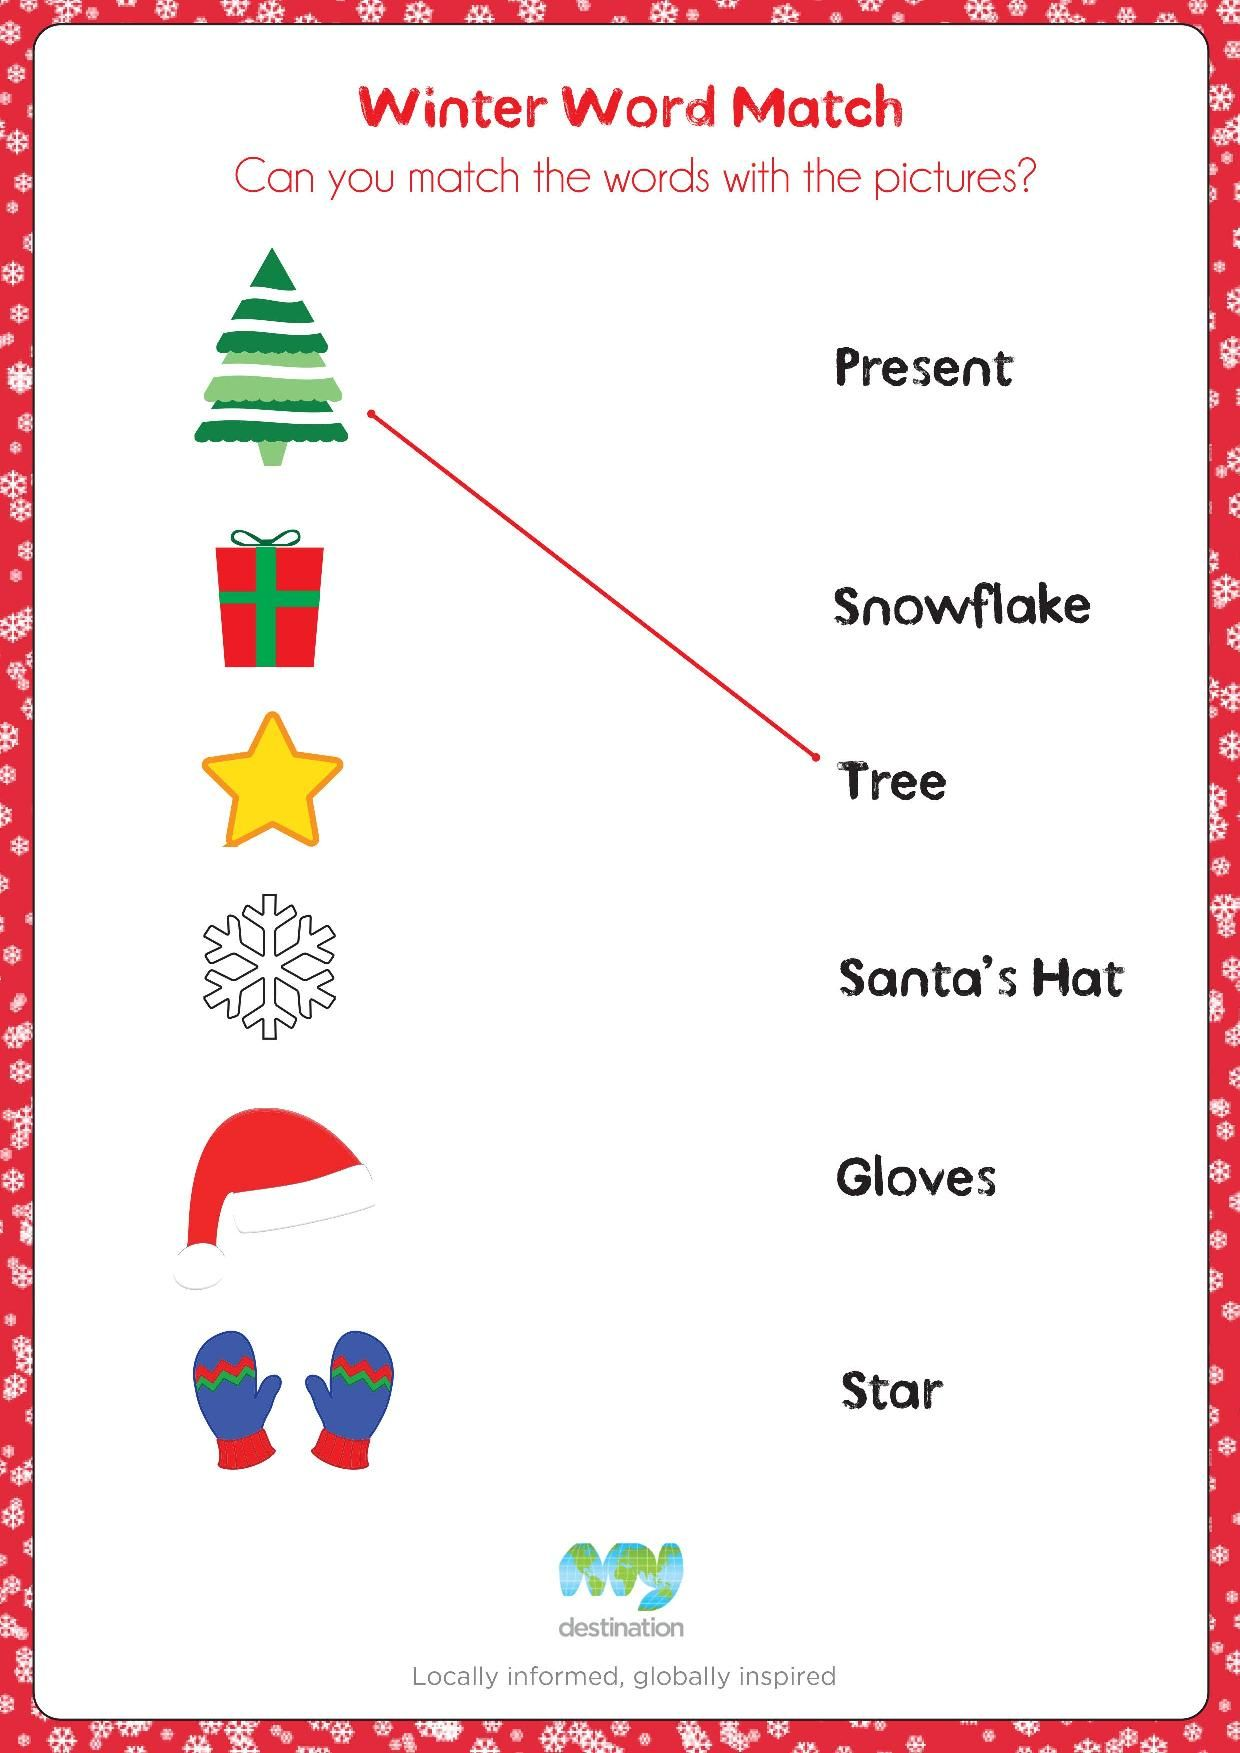 Winter Word Match Download This Puzzle For Free At The Kids Corner